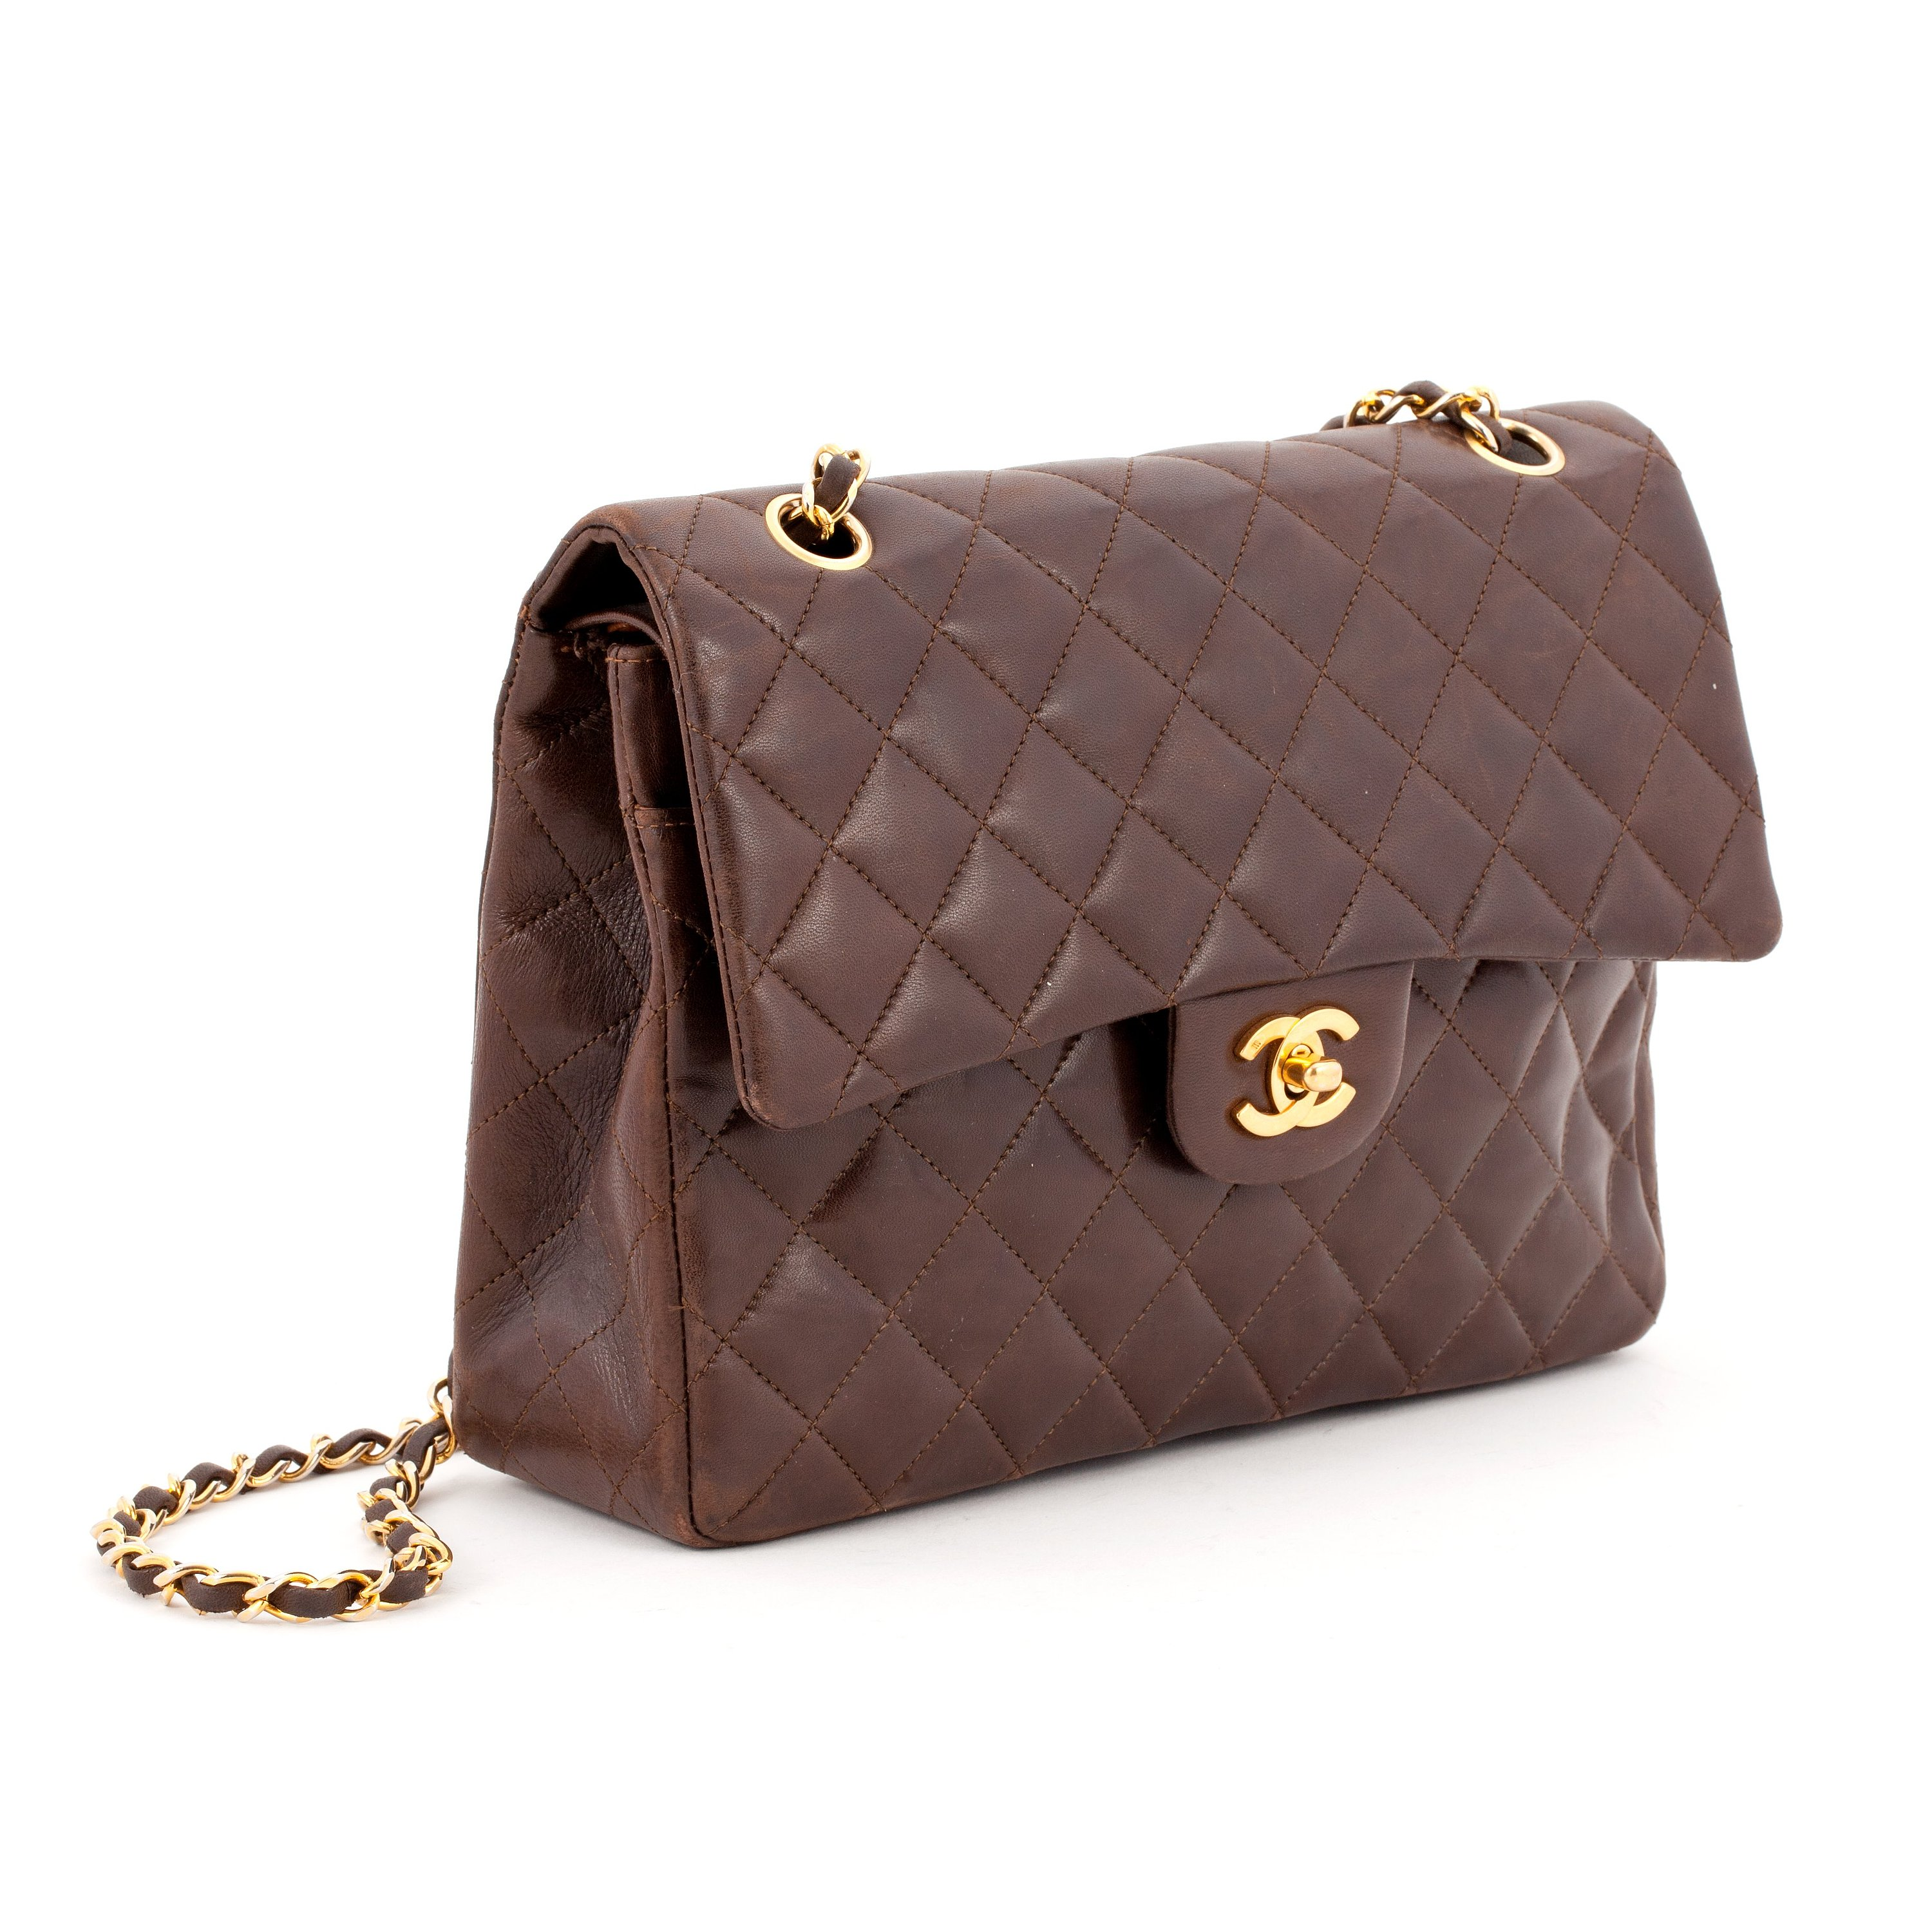 ad6e55de15b03c CHANEL, a quilted brown leather purse,